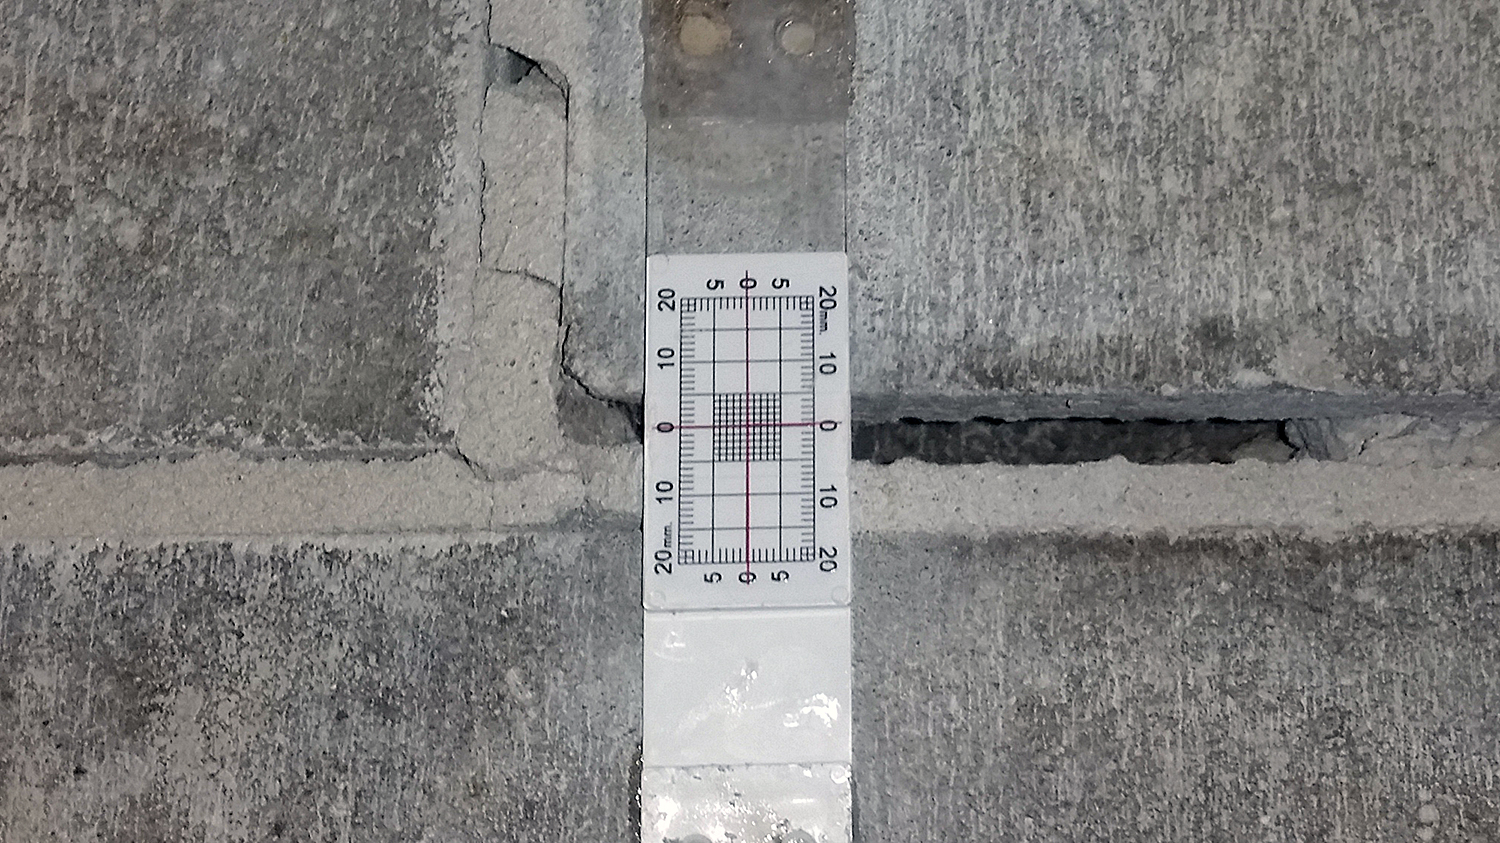 Figure 7. Close-up of Buildera CrackMON® mounted with structural epoxy detects new shifts in crack offsets along x and y axes